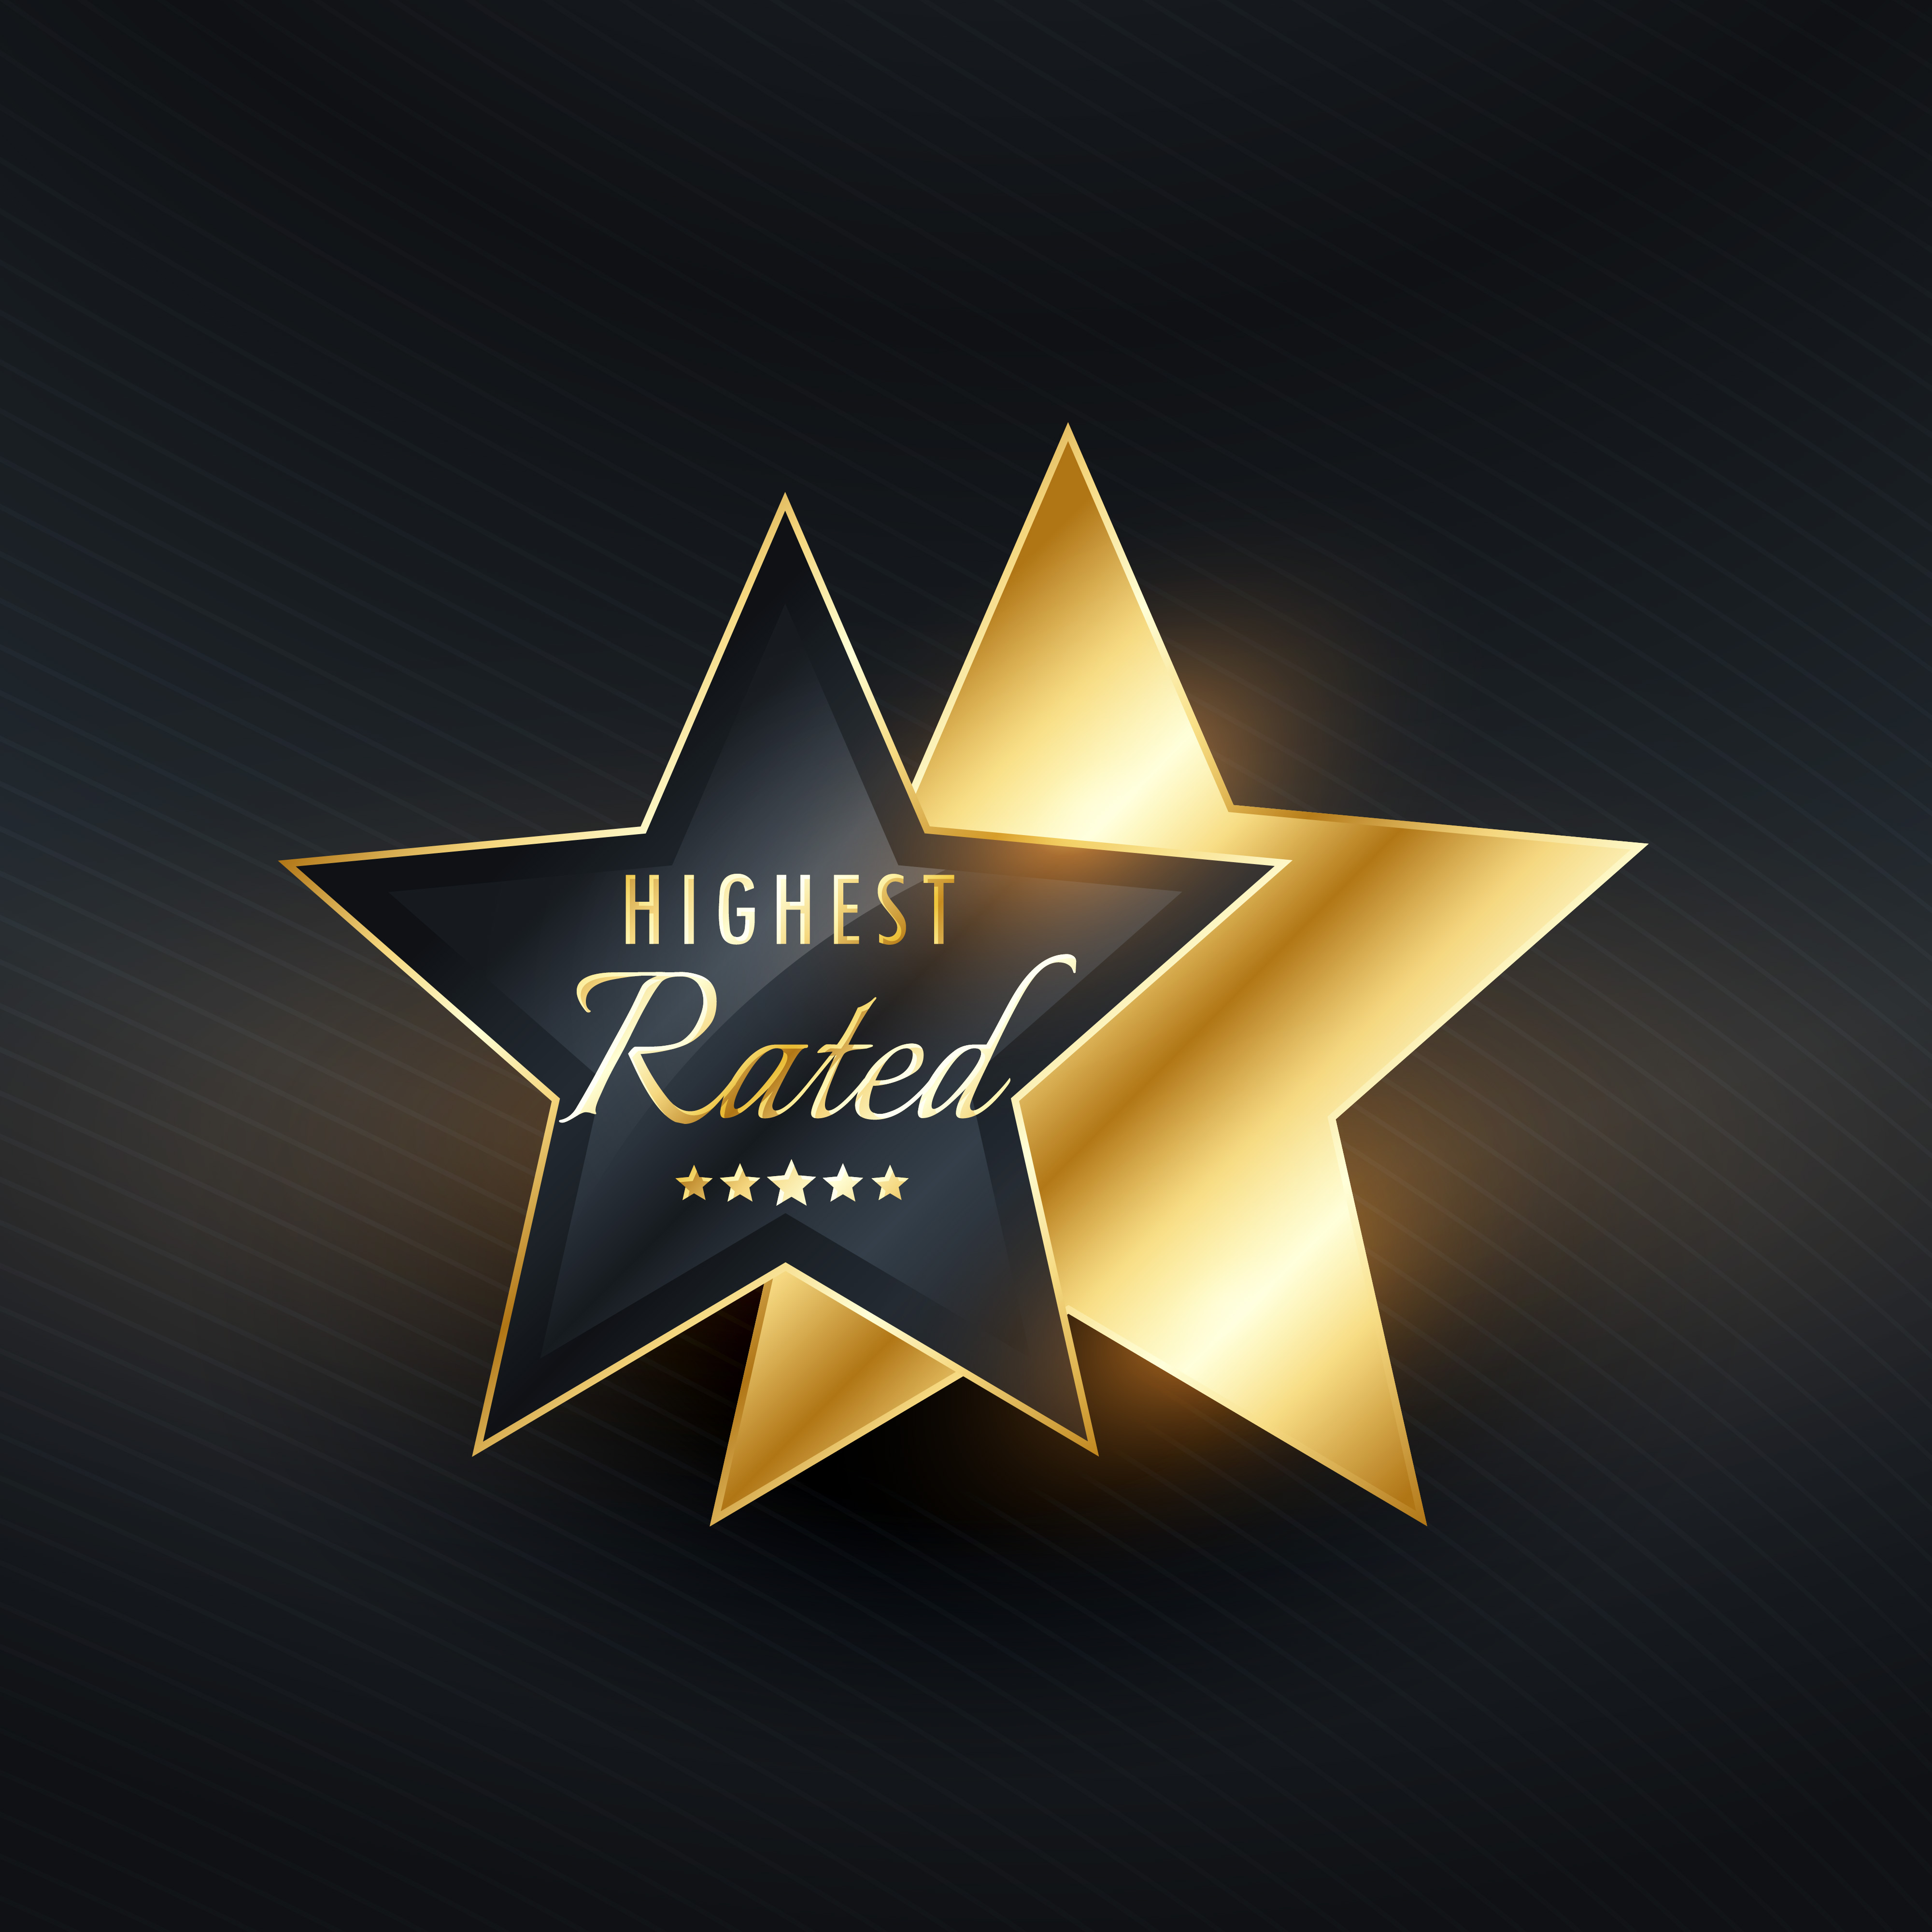 Highest Rated Star Label Vector